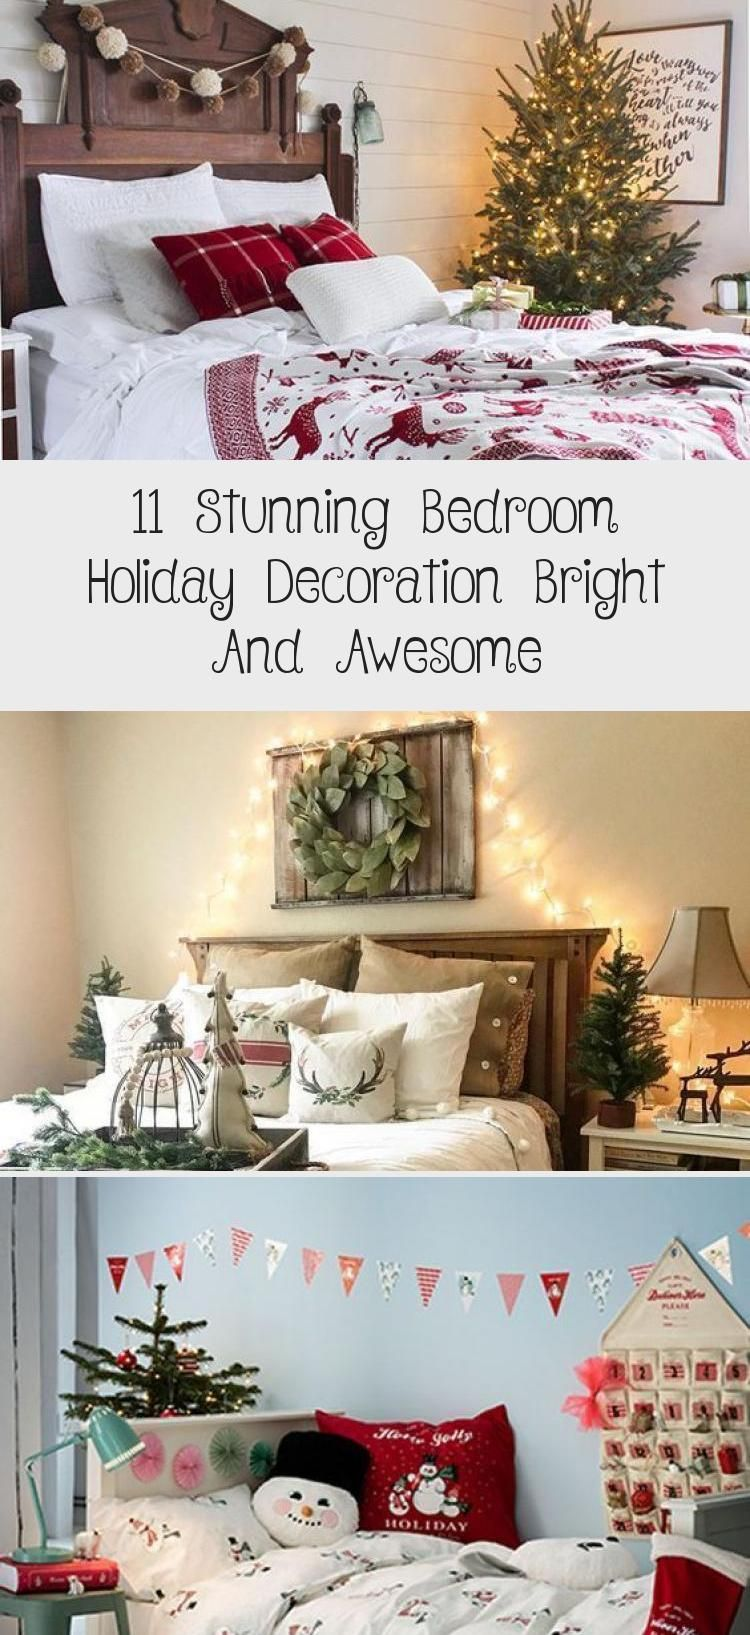 11 Stunning Bedroom Holiday Decoration Bright And Awesome #happyfallyallwallpaper